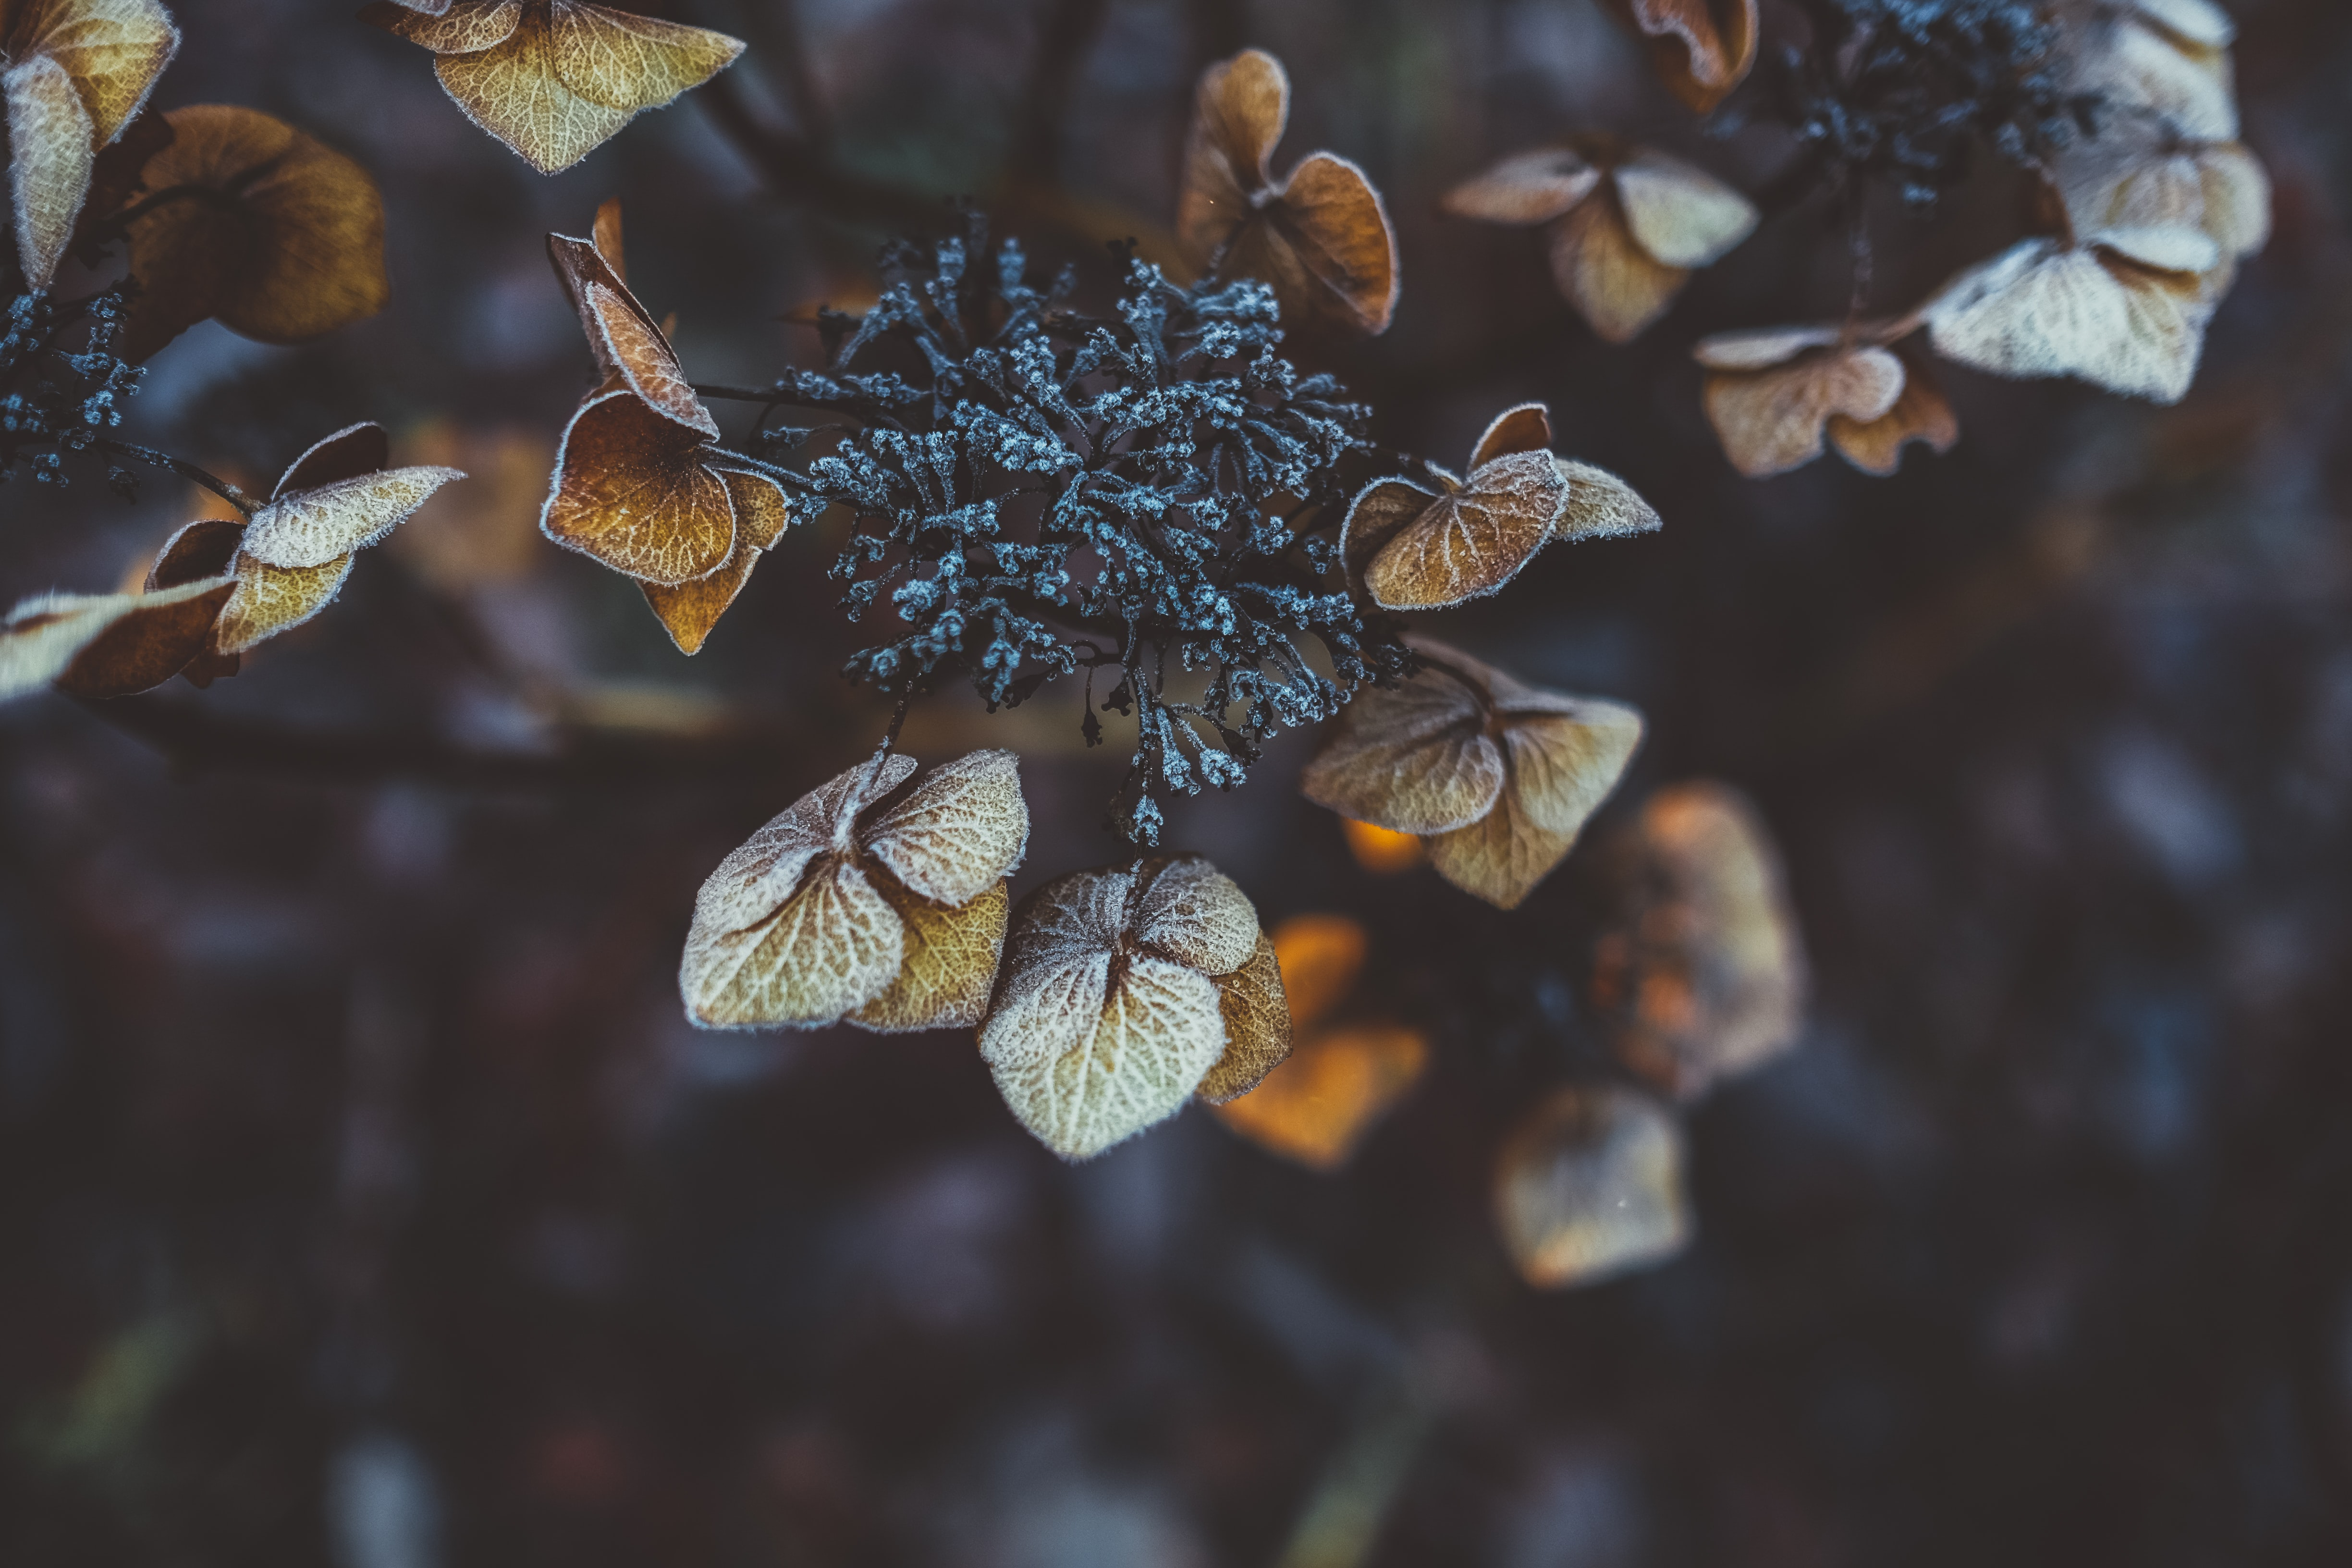 Close-up of frosty hydrangea buds and brown autumn leaves